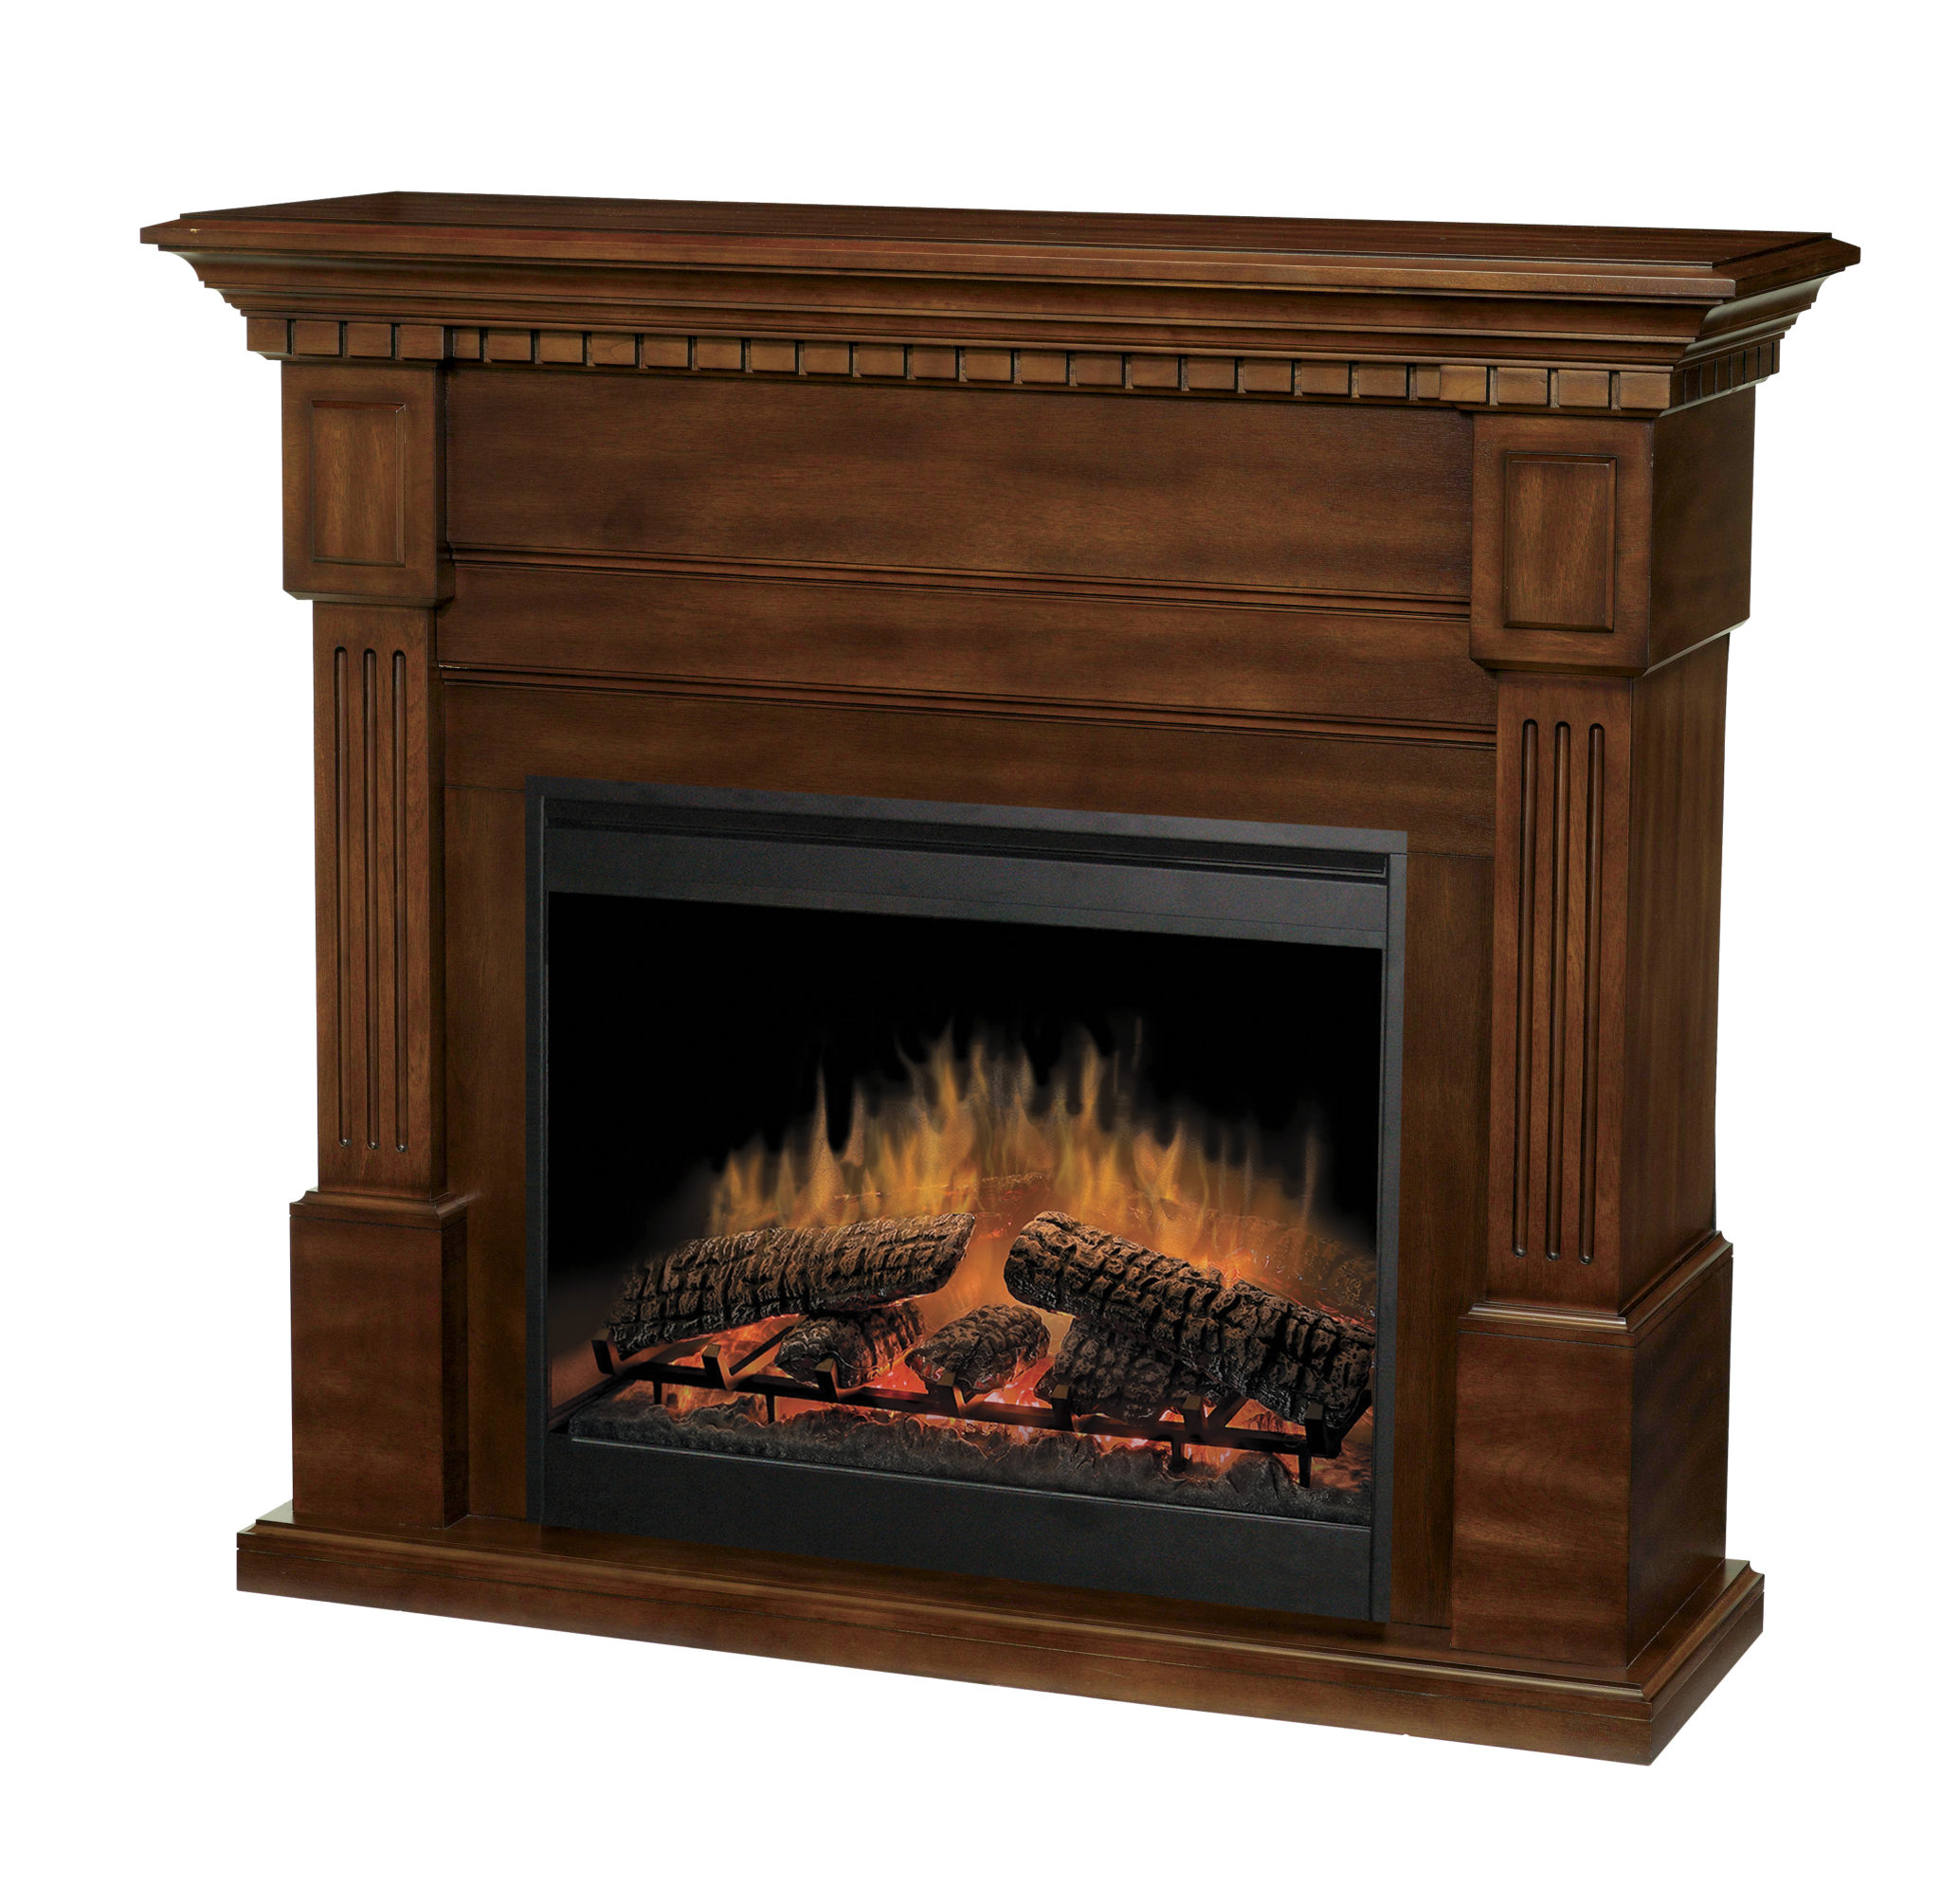 shopfireplace com u2013 wholesale source to hearth and fireplace